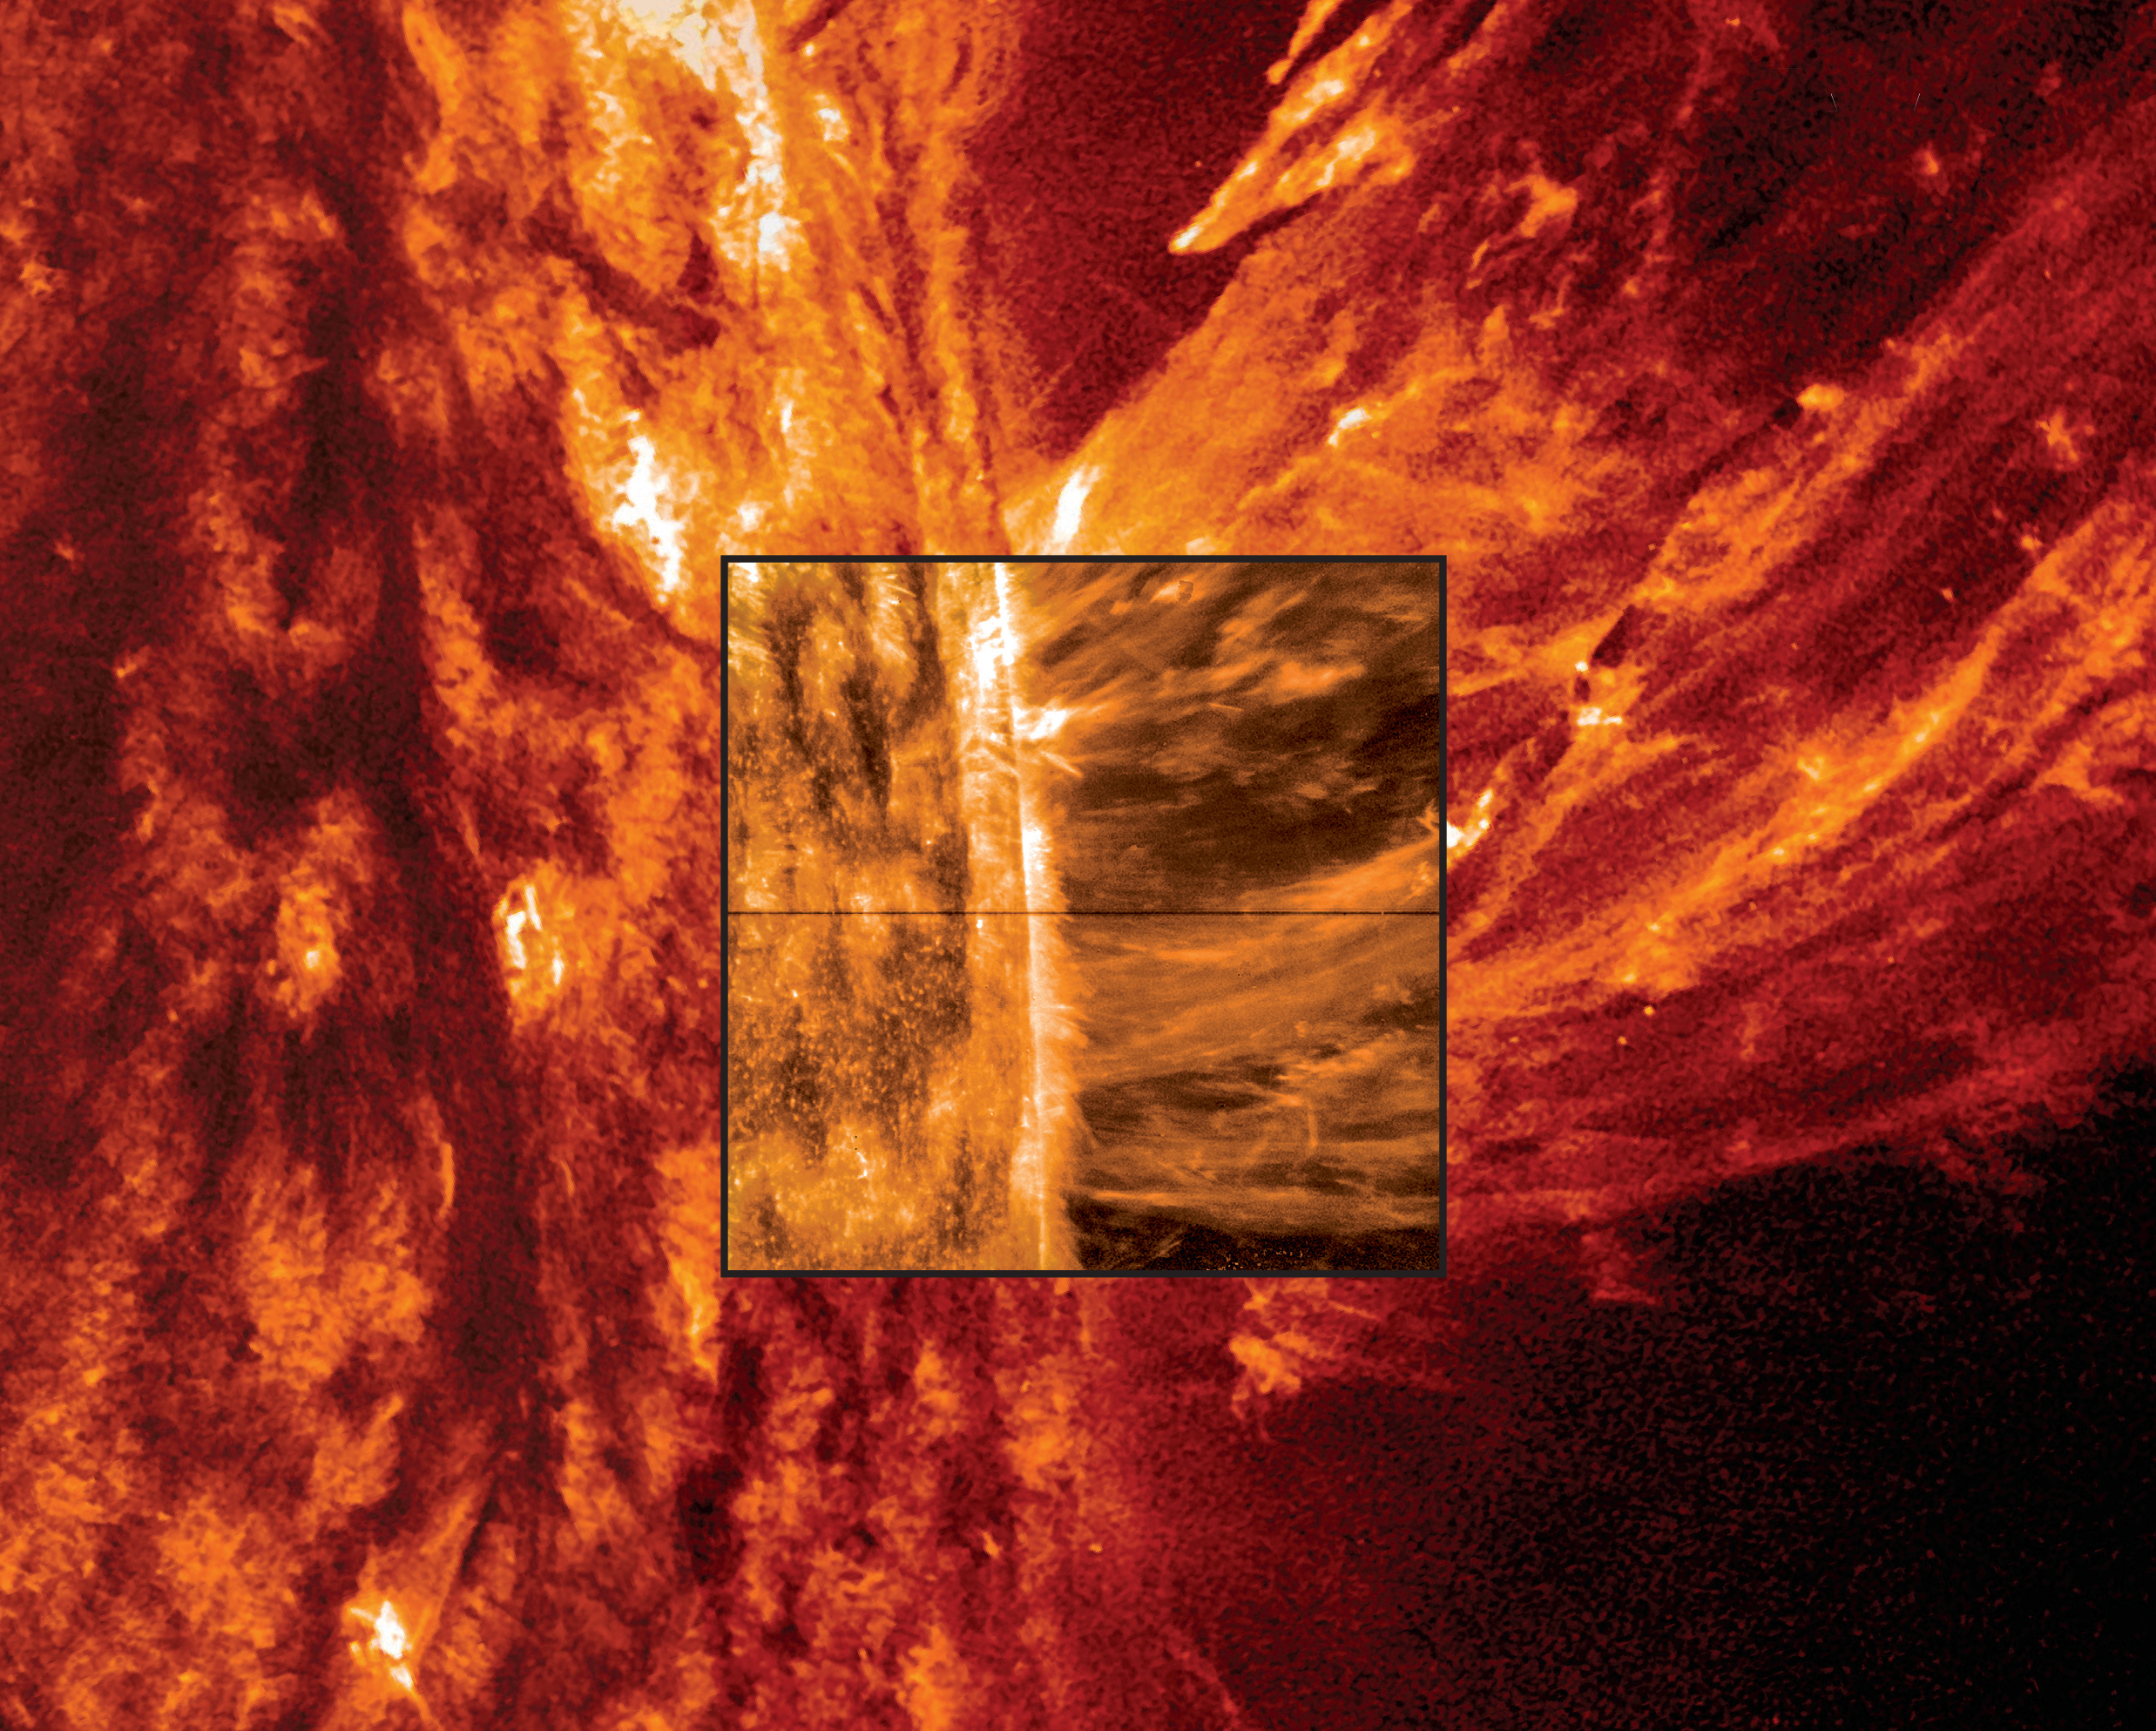 solar atmosphere nasa - photo #33